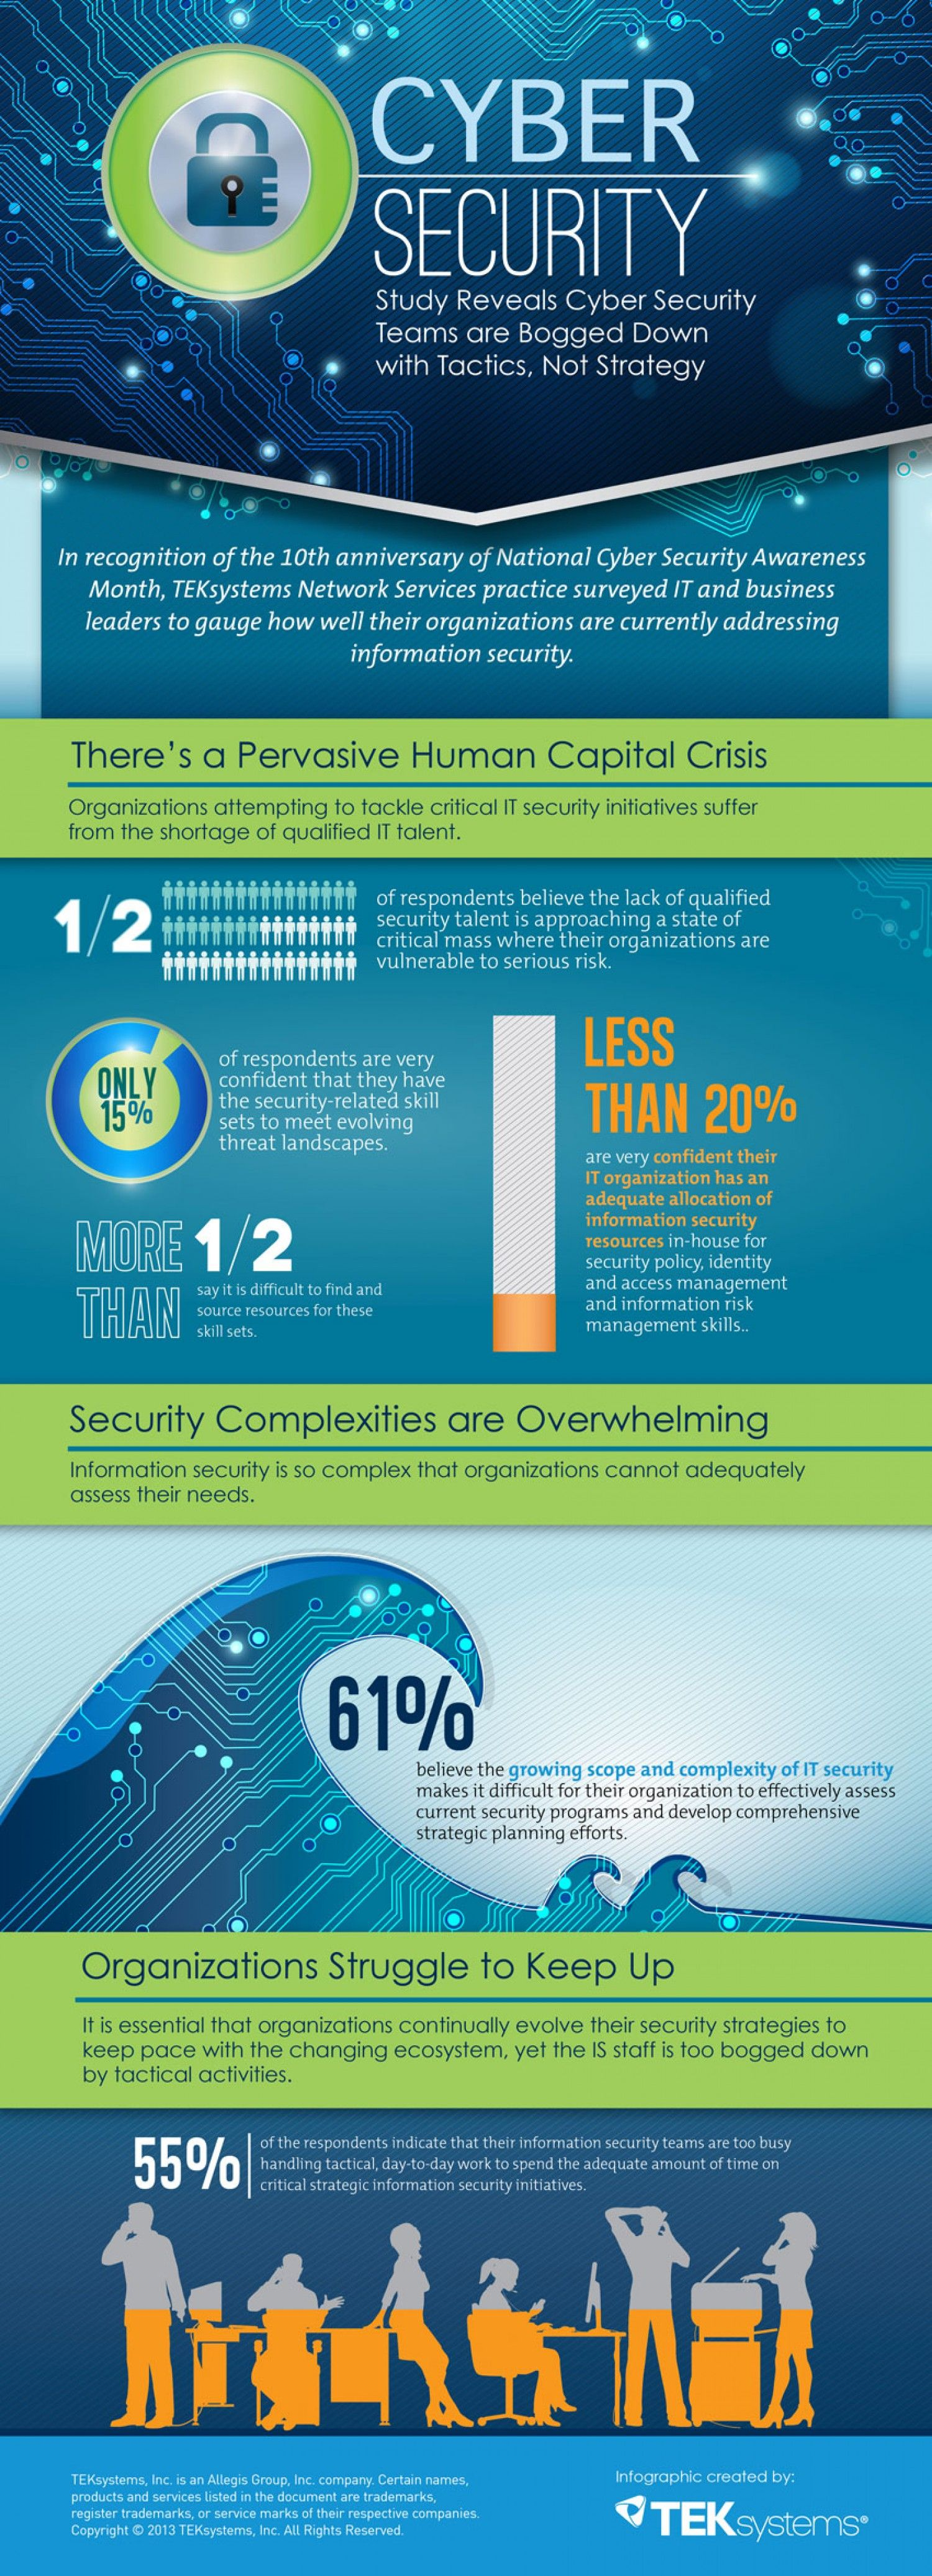 Cyber Security Overwhelms The Corporate Environment